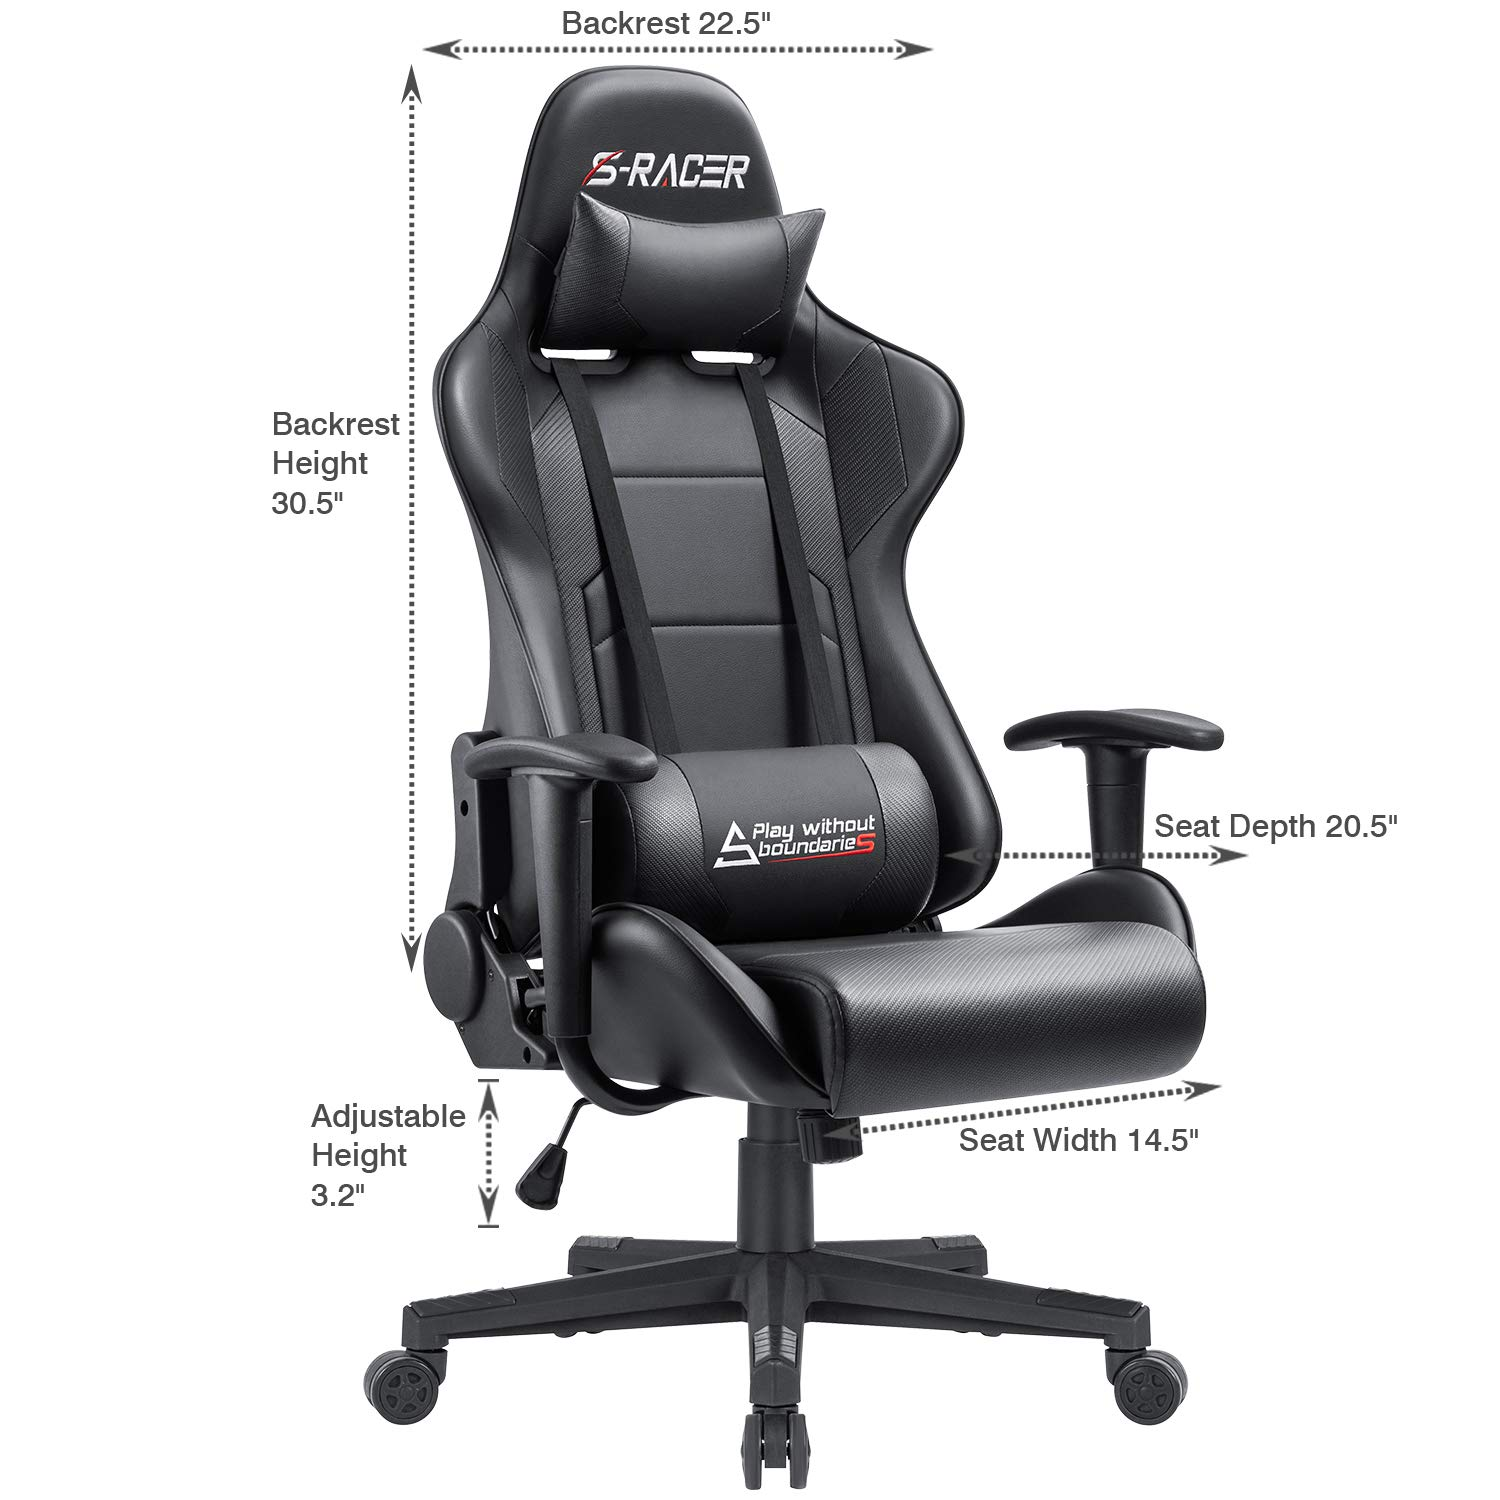 Furniwell Gaming Chair Racing Office Chair Computer Desk Chair Adjustable Swivel High Back Carbon Fiber Style PU Leather Executive Ergonomic Chair with Headrest and Lumbar Support Black